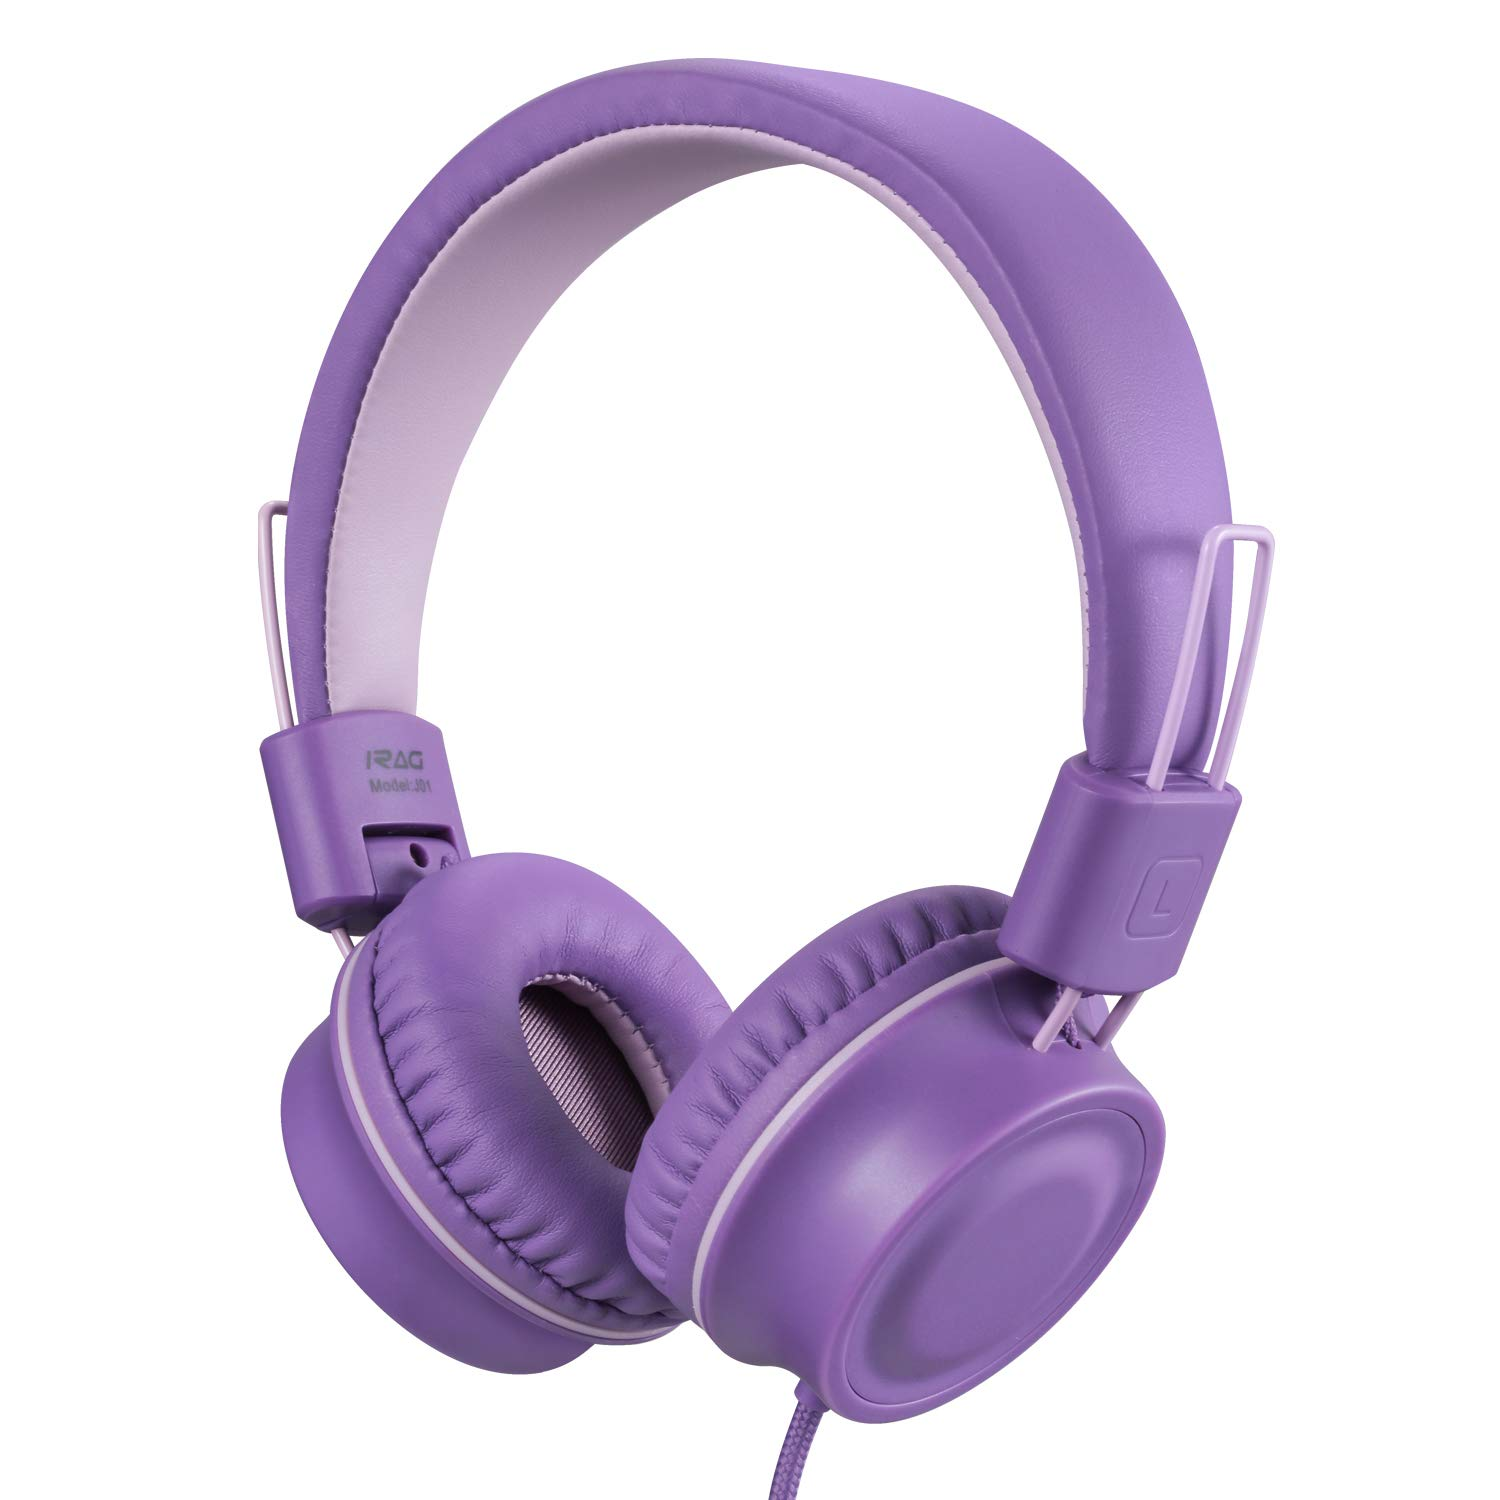 iRAG J01 Kids Headphones Foldable Stereo Tangle-Free 3.5mm Jack Wired Cord On-Ear Headset for Children/Teens/Boys/Girls/iPad/iPhone/School/Kindle/Airplane/Plane/Tablet (Lavender)